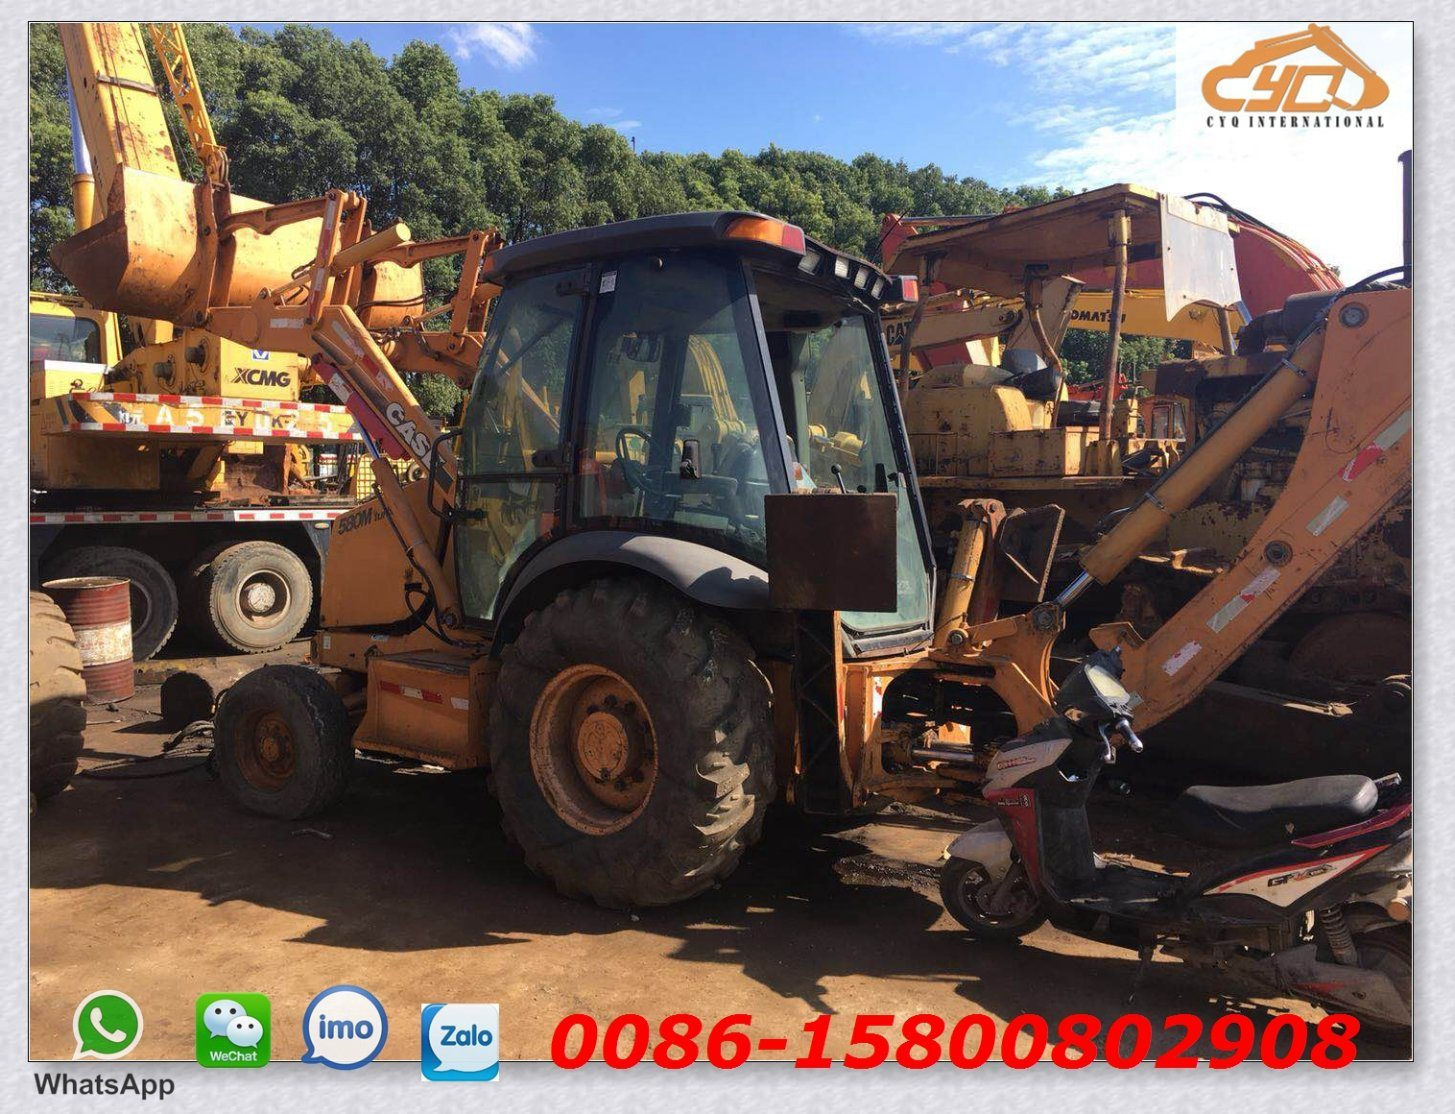 hight resolution of china used case 580m backhoe loader used skid steer loader case 580m china used case backhoe loader secondhand backhoe for sale